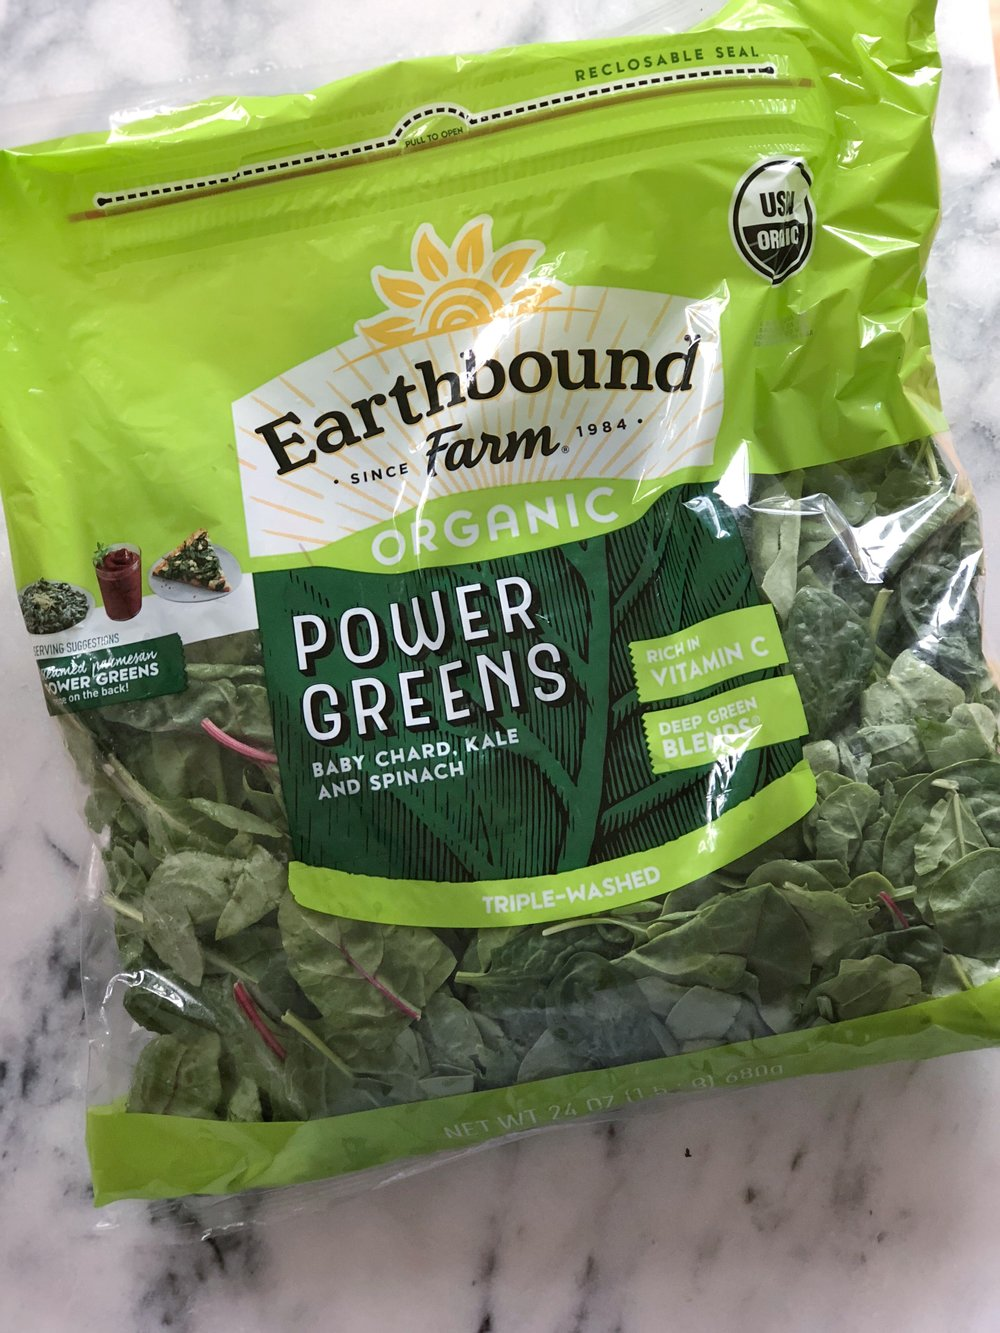 MIXED POWER GREENS BLEND  A great bag to keep on hand for everything. Contain spinach, baby chard, and kale. The kale is soft enough to work well in smoothies and juices. This can be used in a raw salad (I would chop it though), tossed into your stir-fry, or added to a soup at the end to just soften.